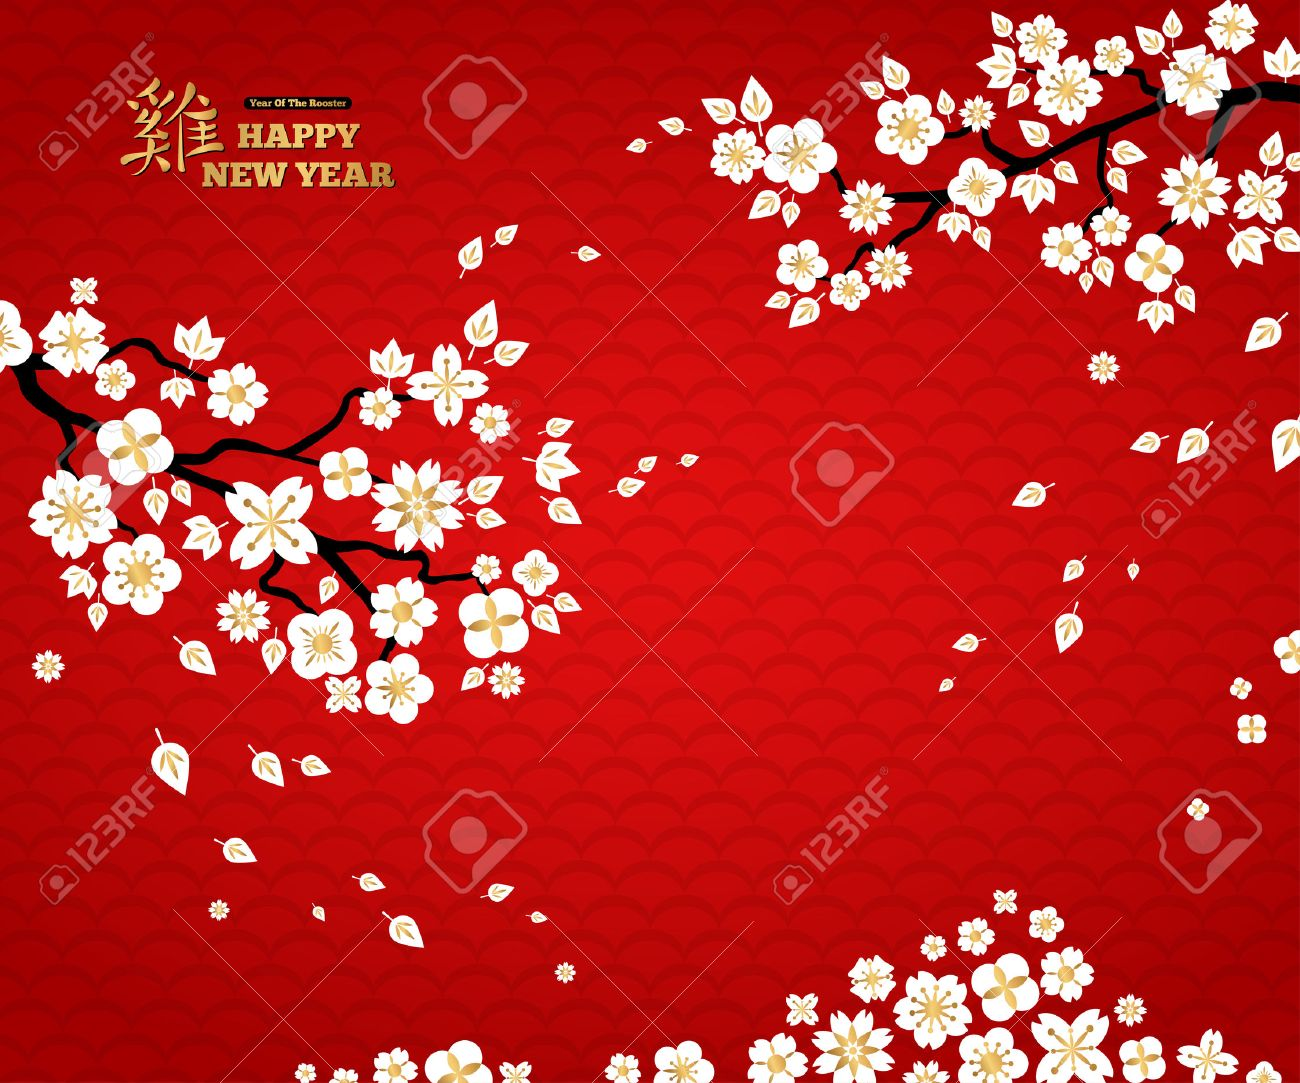 2017 Chinese New Year Greeting Card Royalty Free Cliparts Vectors